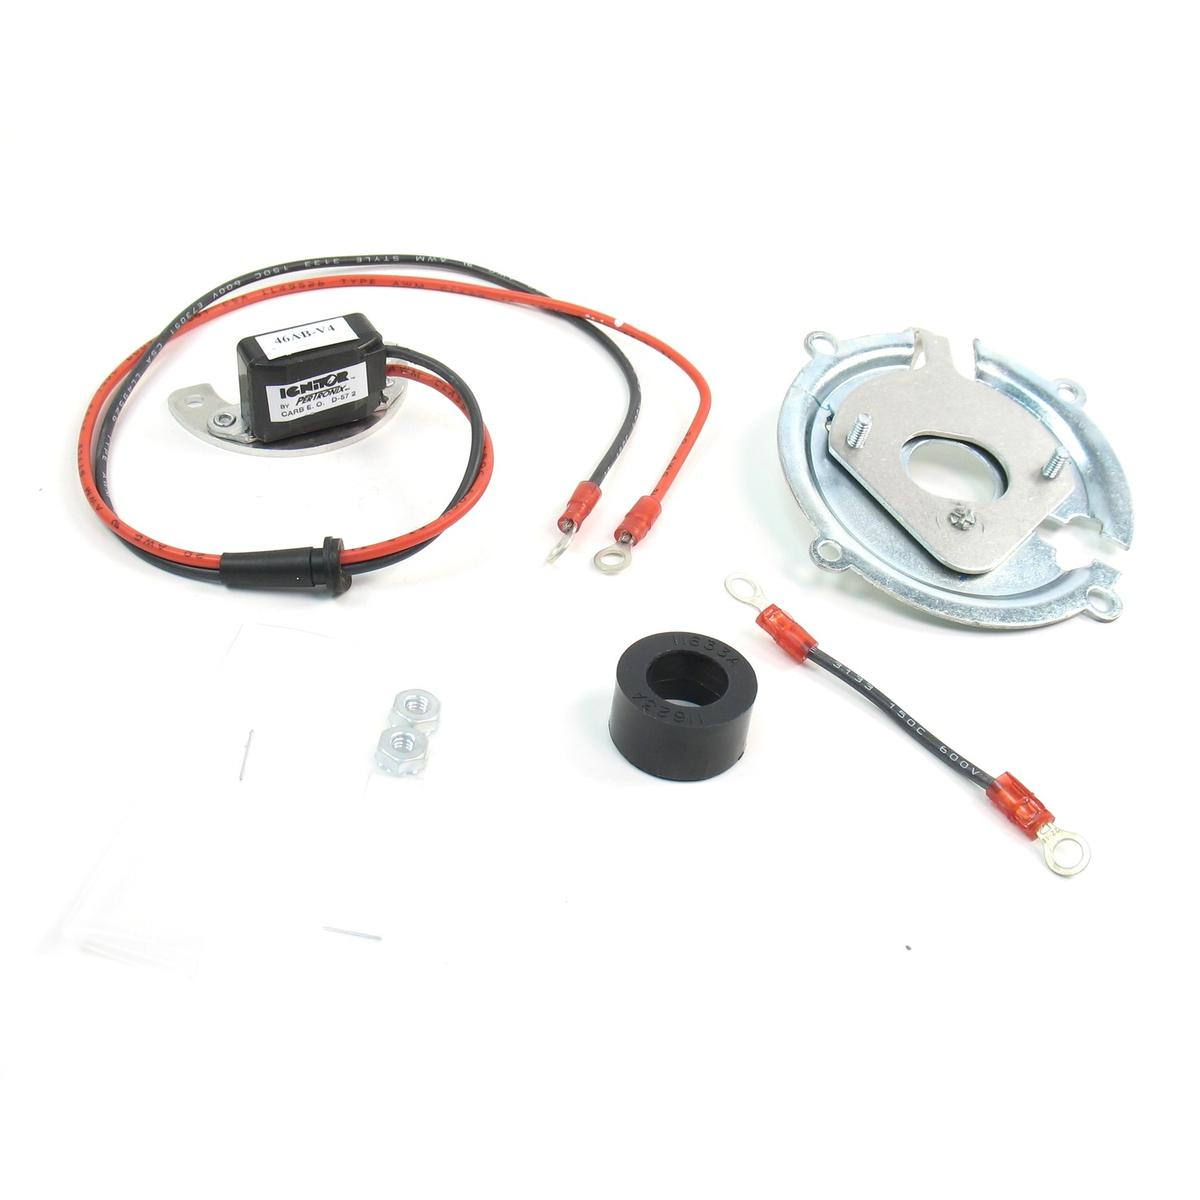 PerTronix 1162A Ignitor for Delco 6 Cylinder with Vacuum Advance